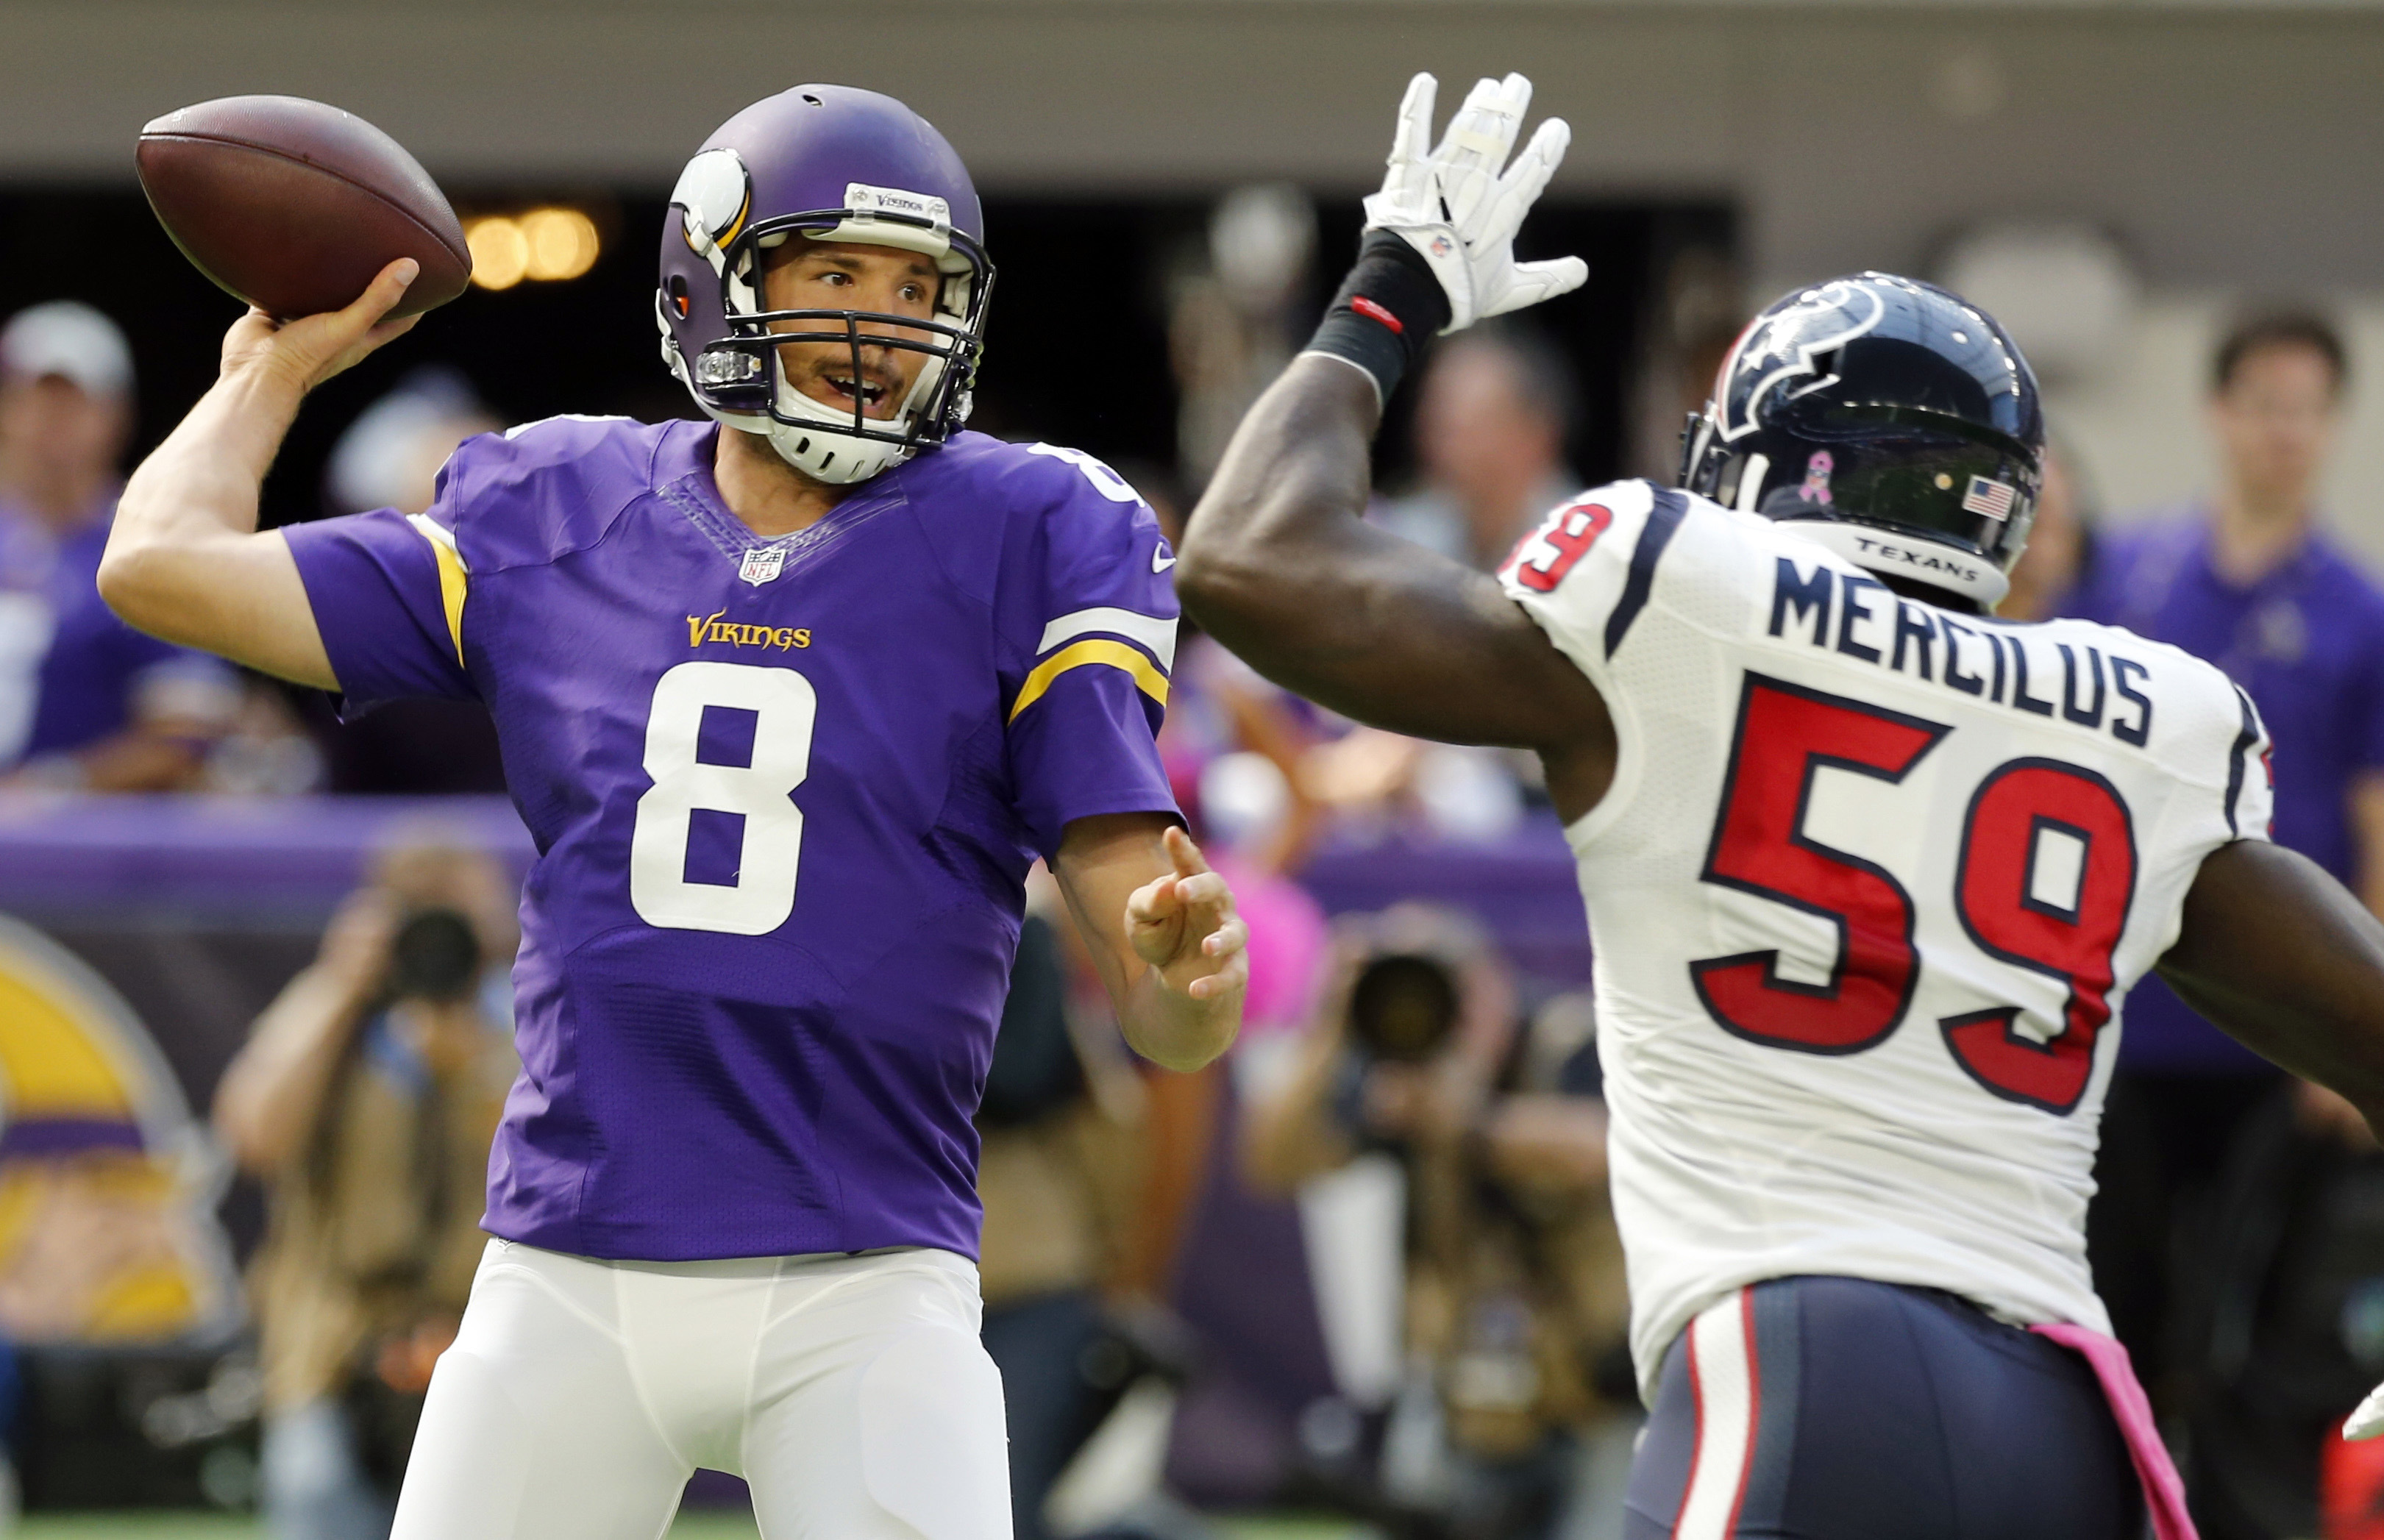 Minnesota Vikings quarterback Sam Bradford (8) throws a pass over Houston Texans outside linebacker Whitney Mercilus, right, during the first half of an NFL football game Sunday, Oct. 9, 2016, in Minneapolis. (AP Photo/Jim Mone)